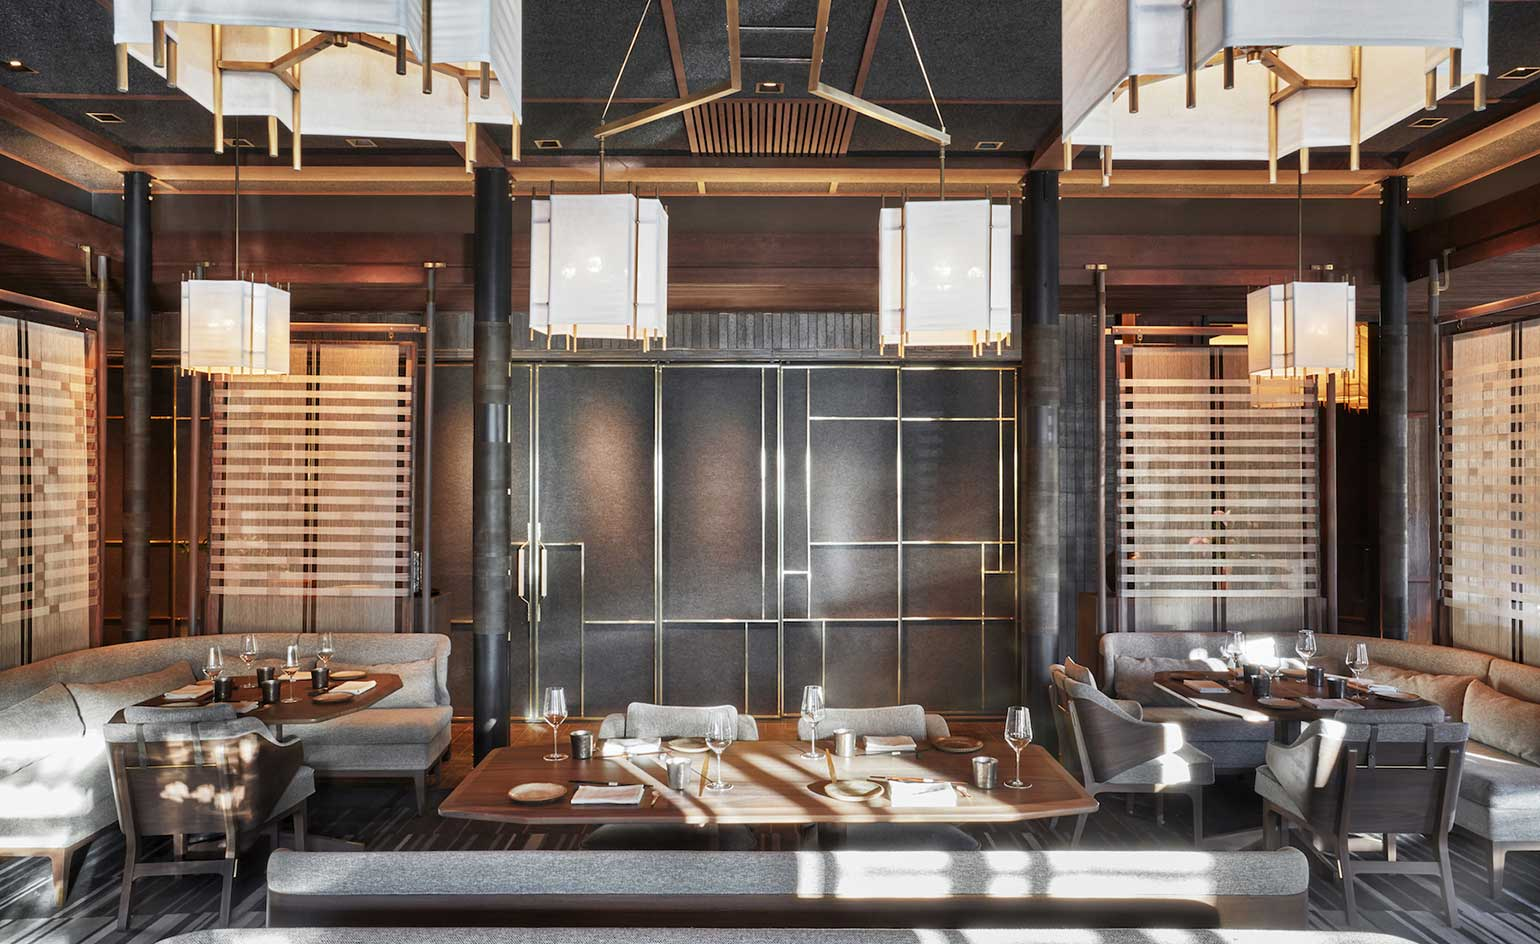 healdsburg divorced singles Girls getaway to healdsburg it's time to plan a sonoma wine country getaway with girlfriends pick any area of sonoma county and, within just a few miles.